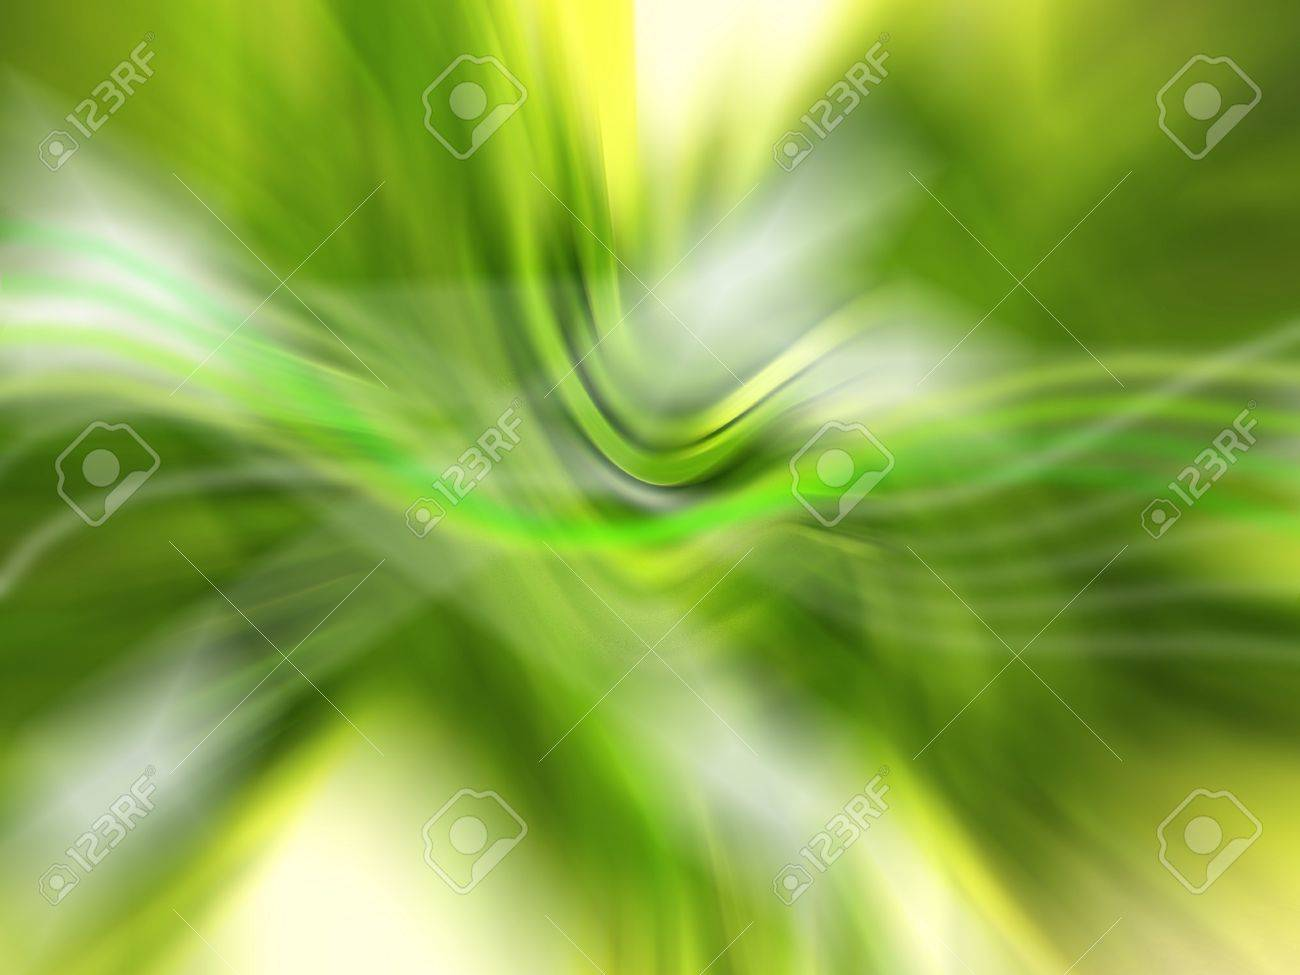 Green softness of an abstract backdrop with lights and blurs Stock Photo - 12807902